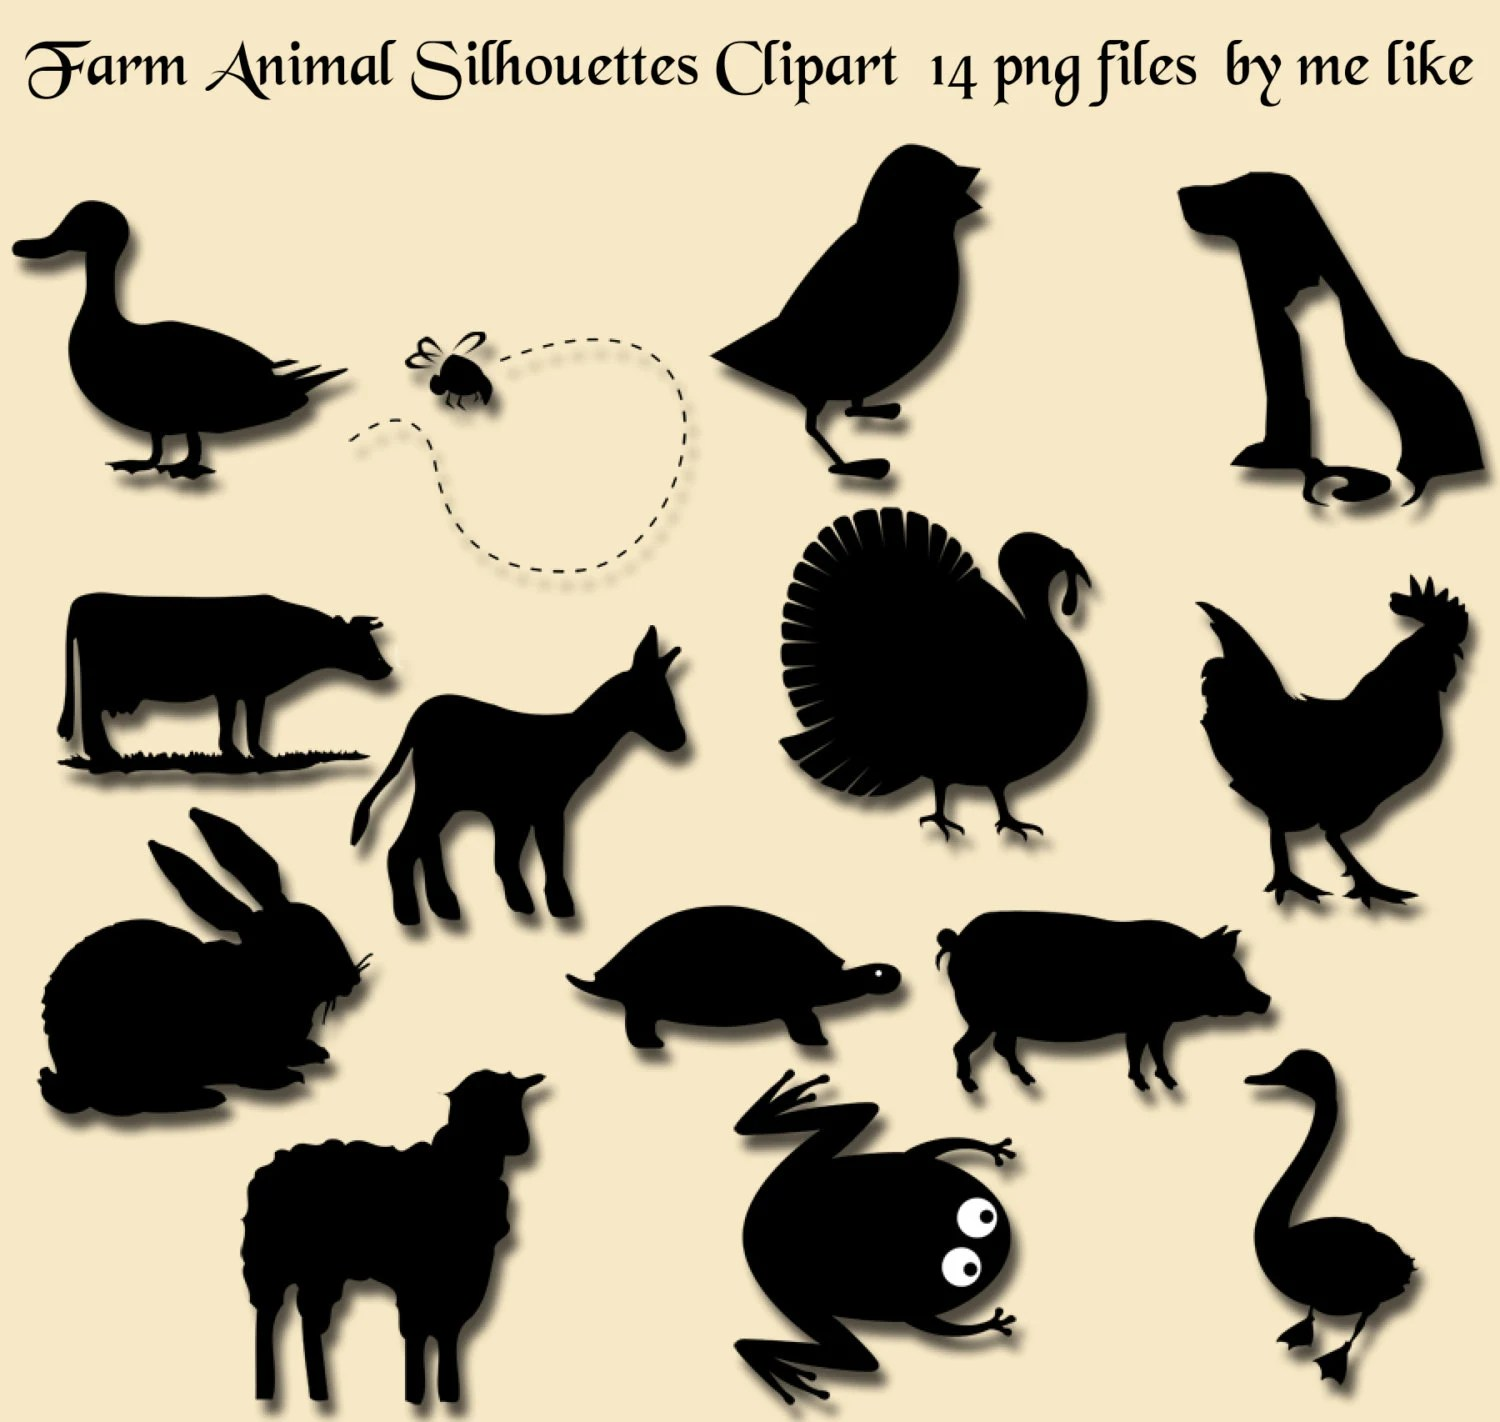 farm animal silhouettes clip art instant download 14 individual png files clipart for personal or commercial use 300 dpi embellishment [ 1500 x 1422 Pixel ]